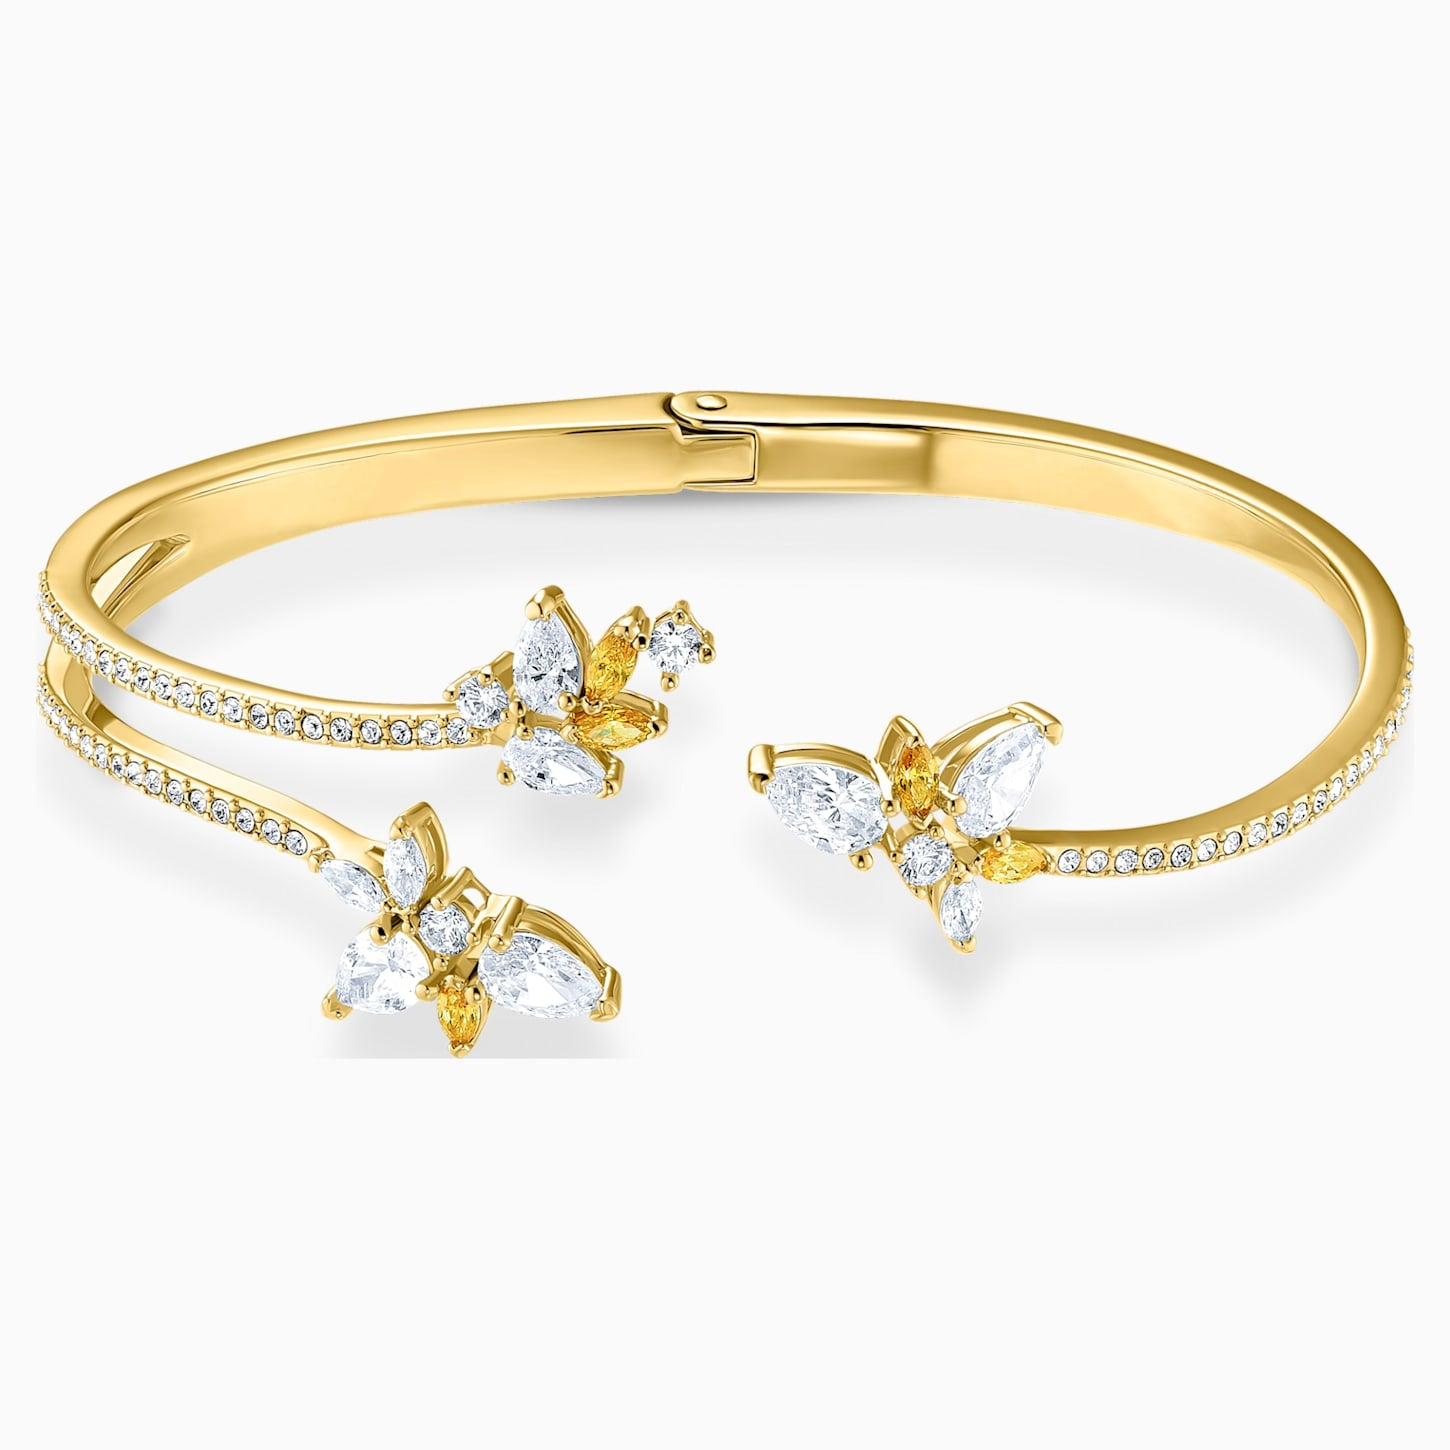 NEW  ATELIER SWAROVSKI BOTANICAL CUFF, WHITE, GOLD-TONE PLATED